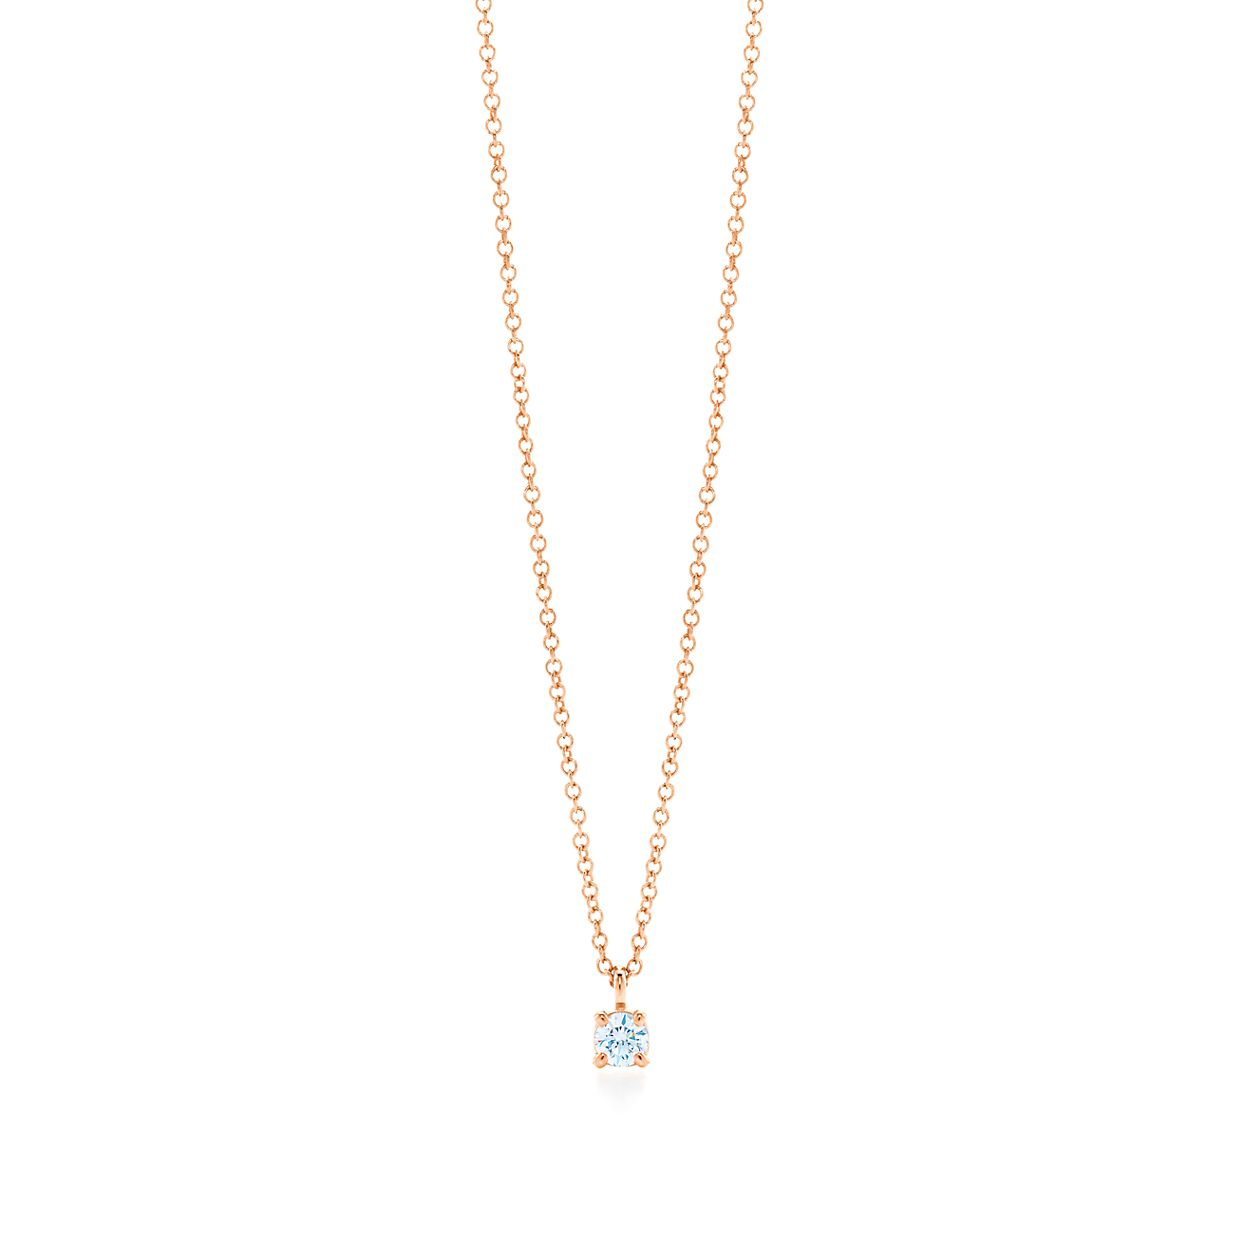 Chaîne En Or Rose 18 Carats - Taille 30 Tiffany & Co. XsPWb